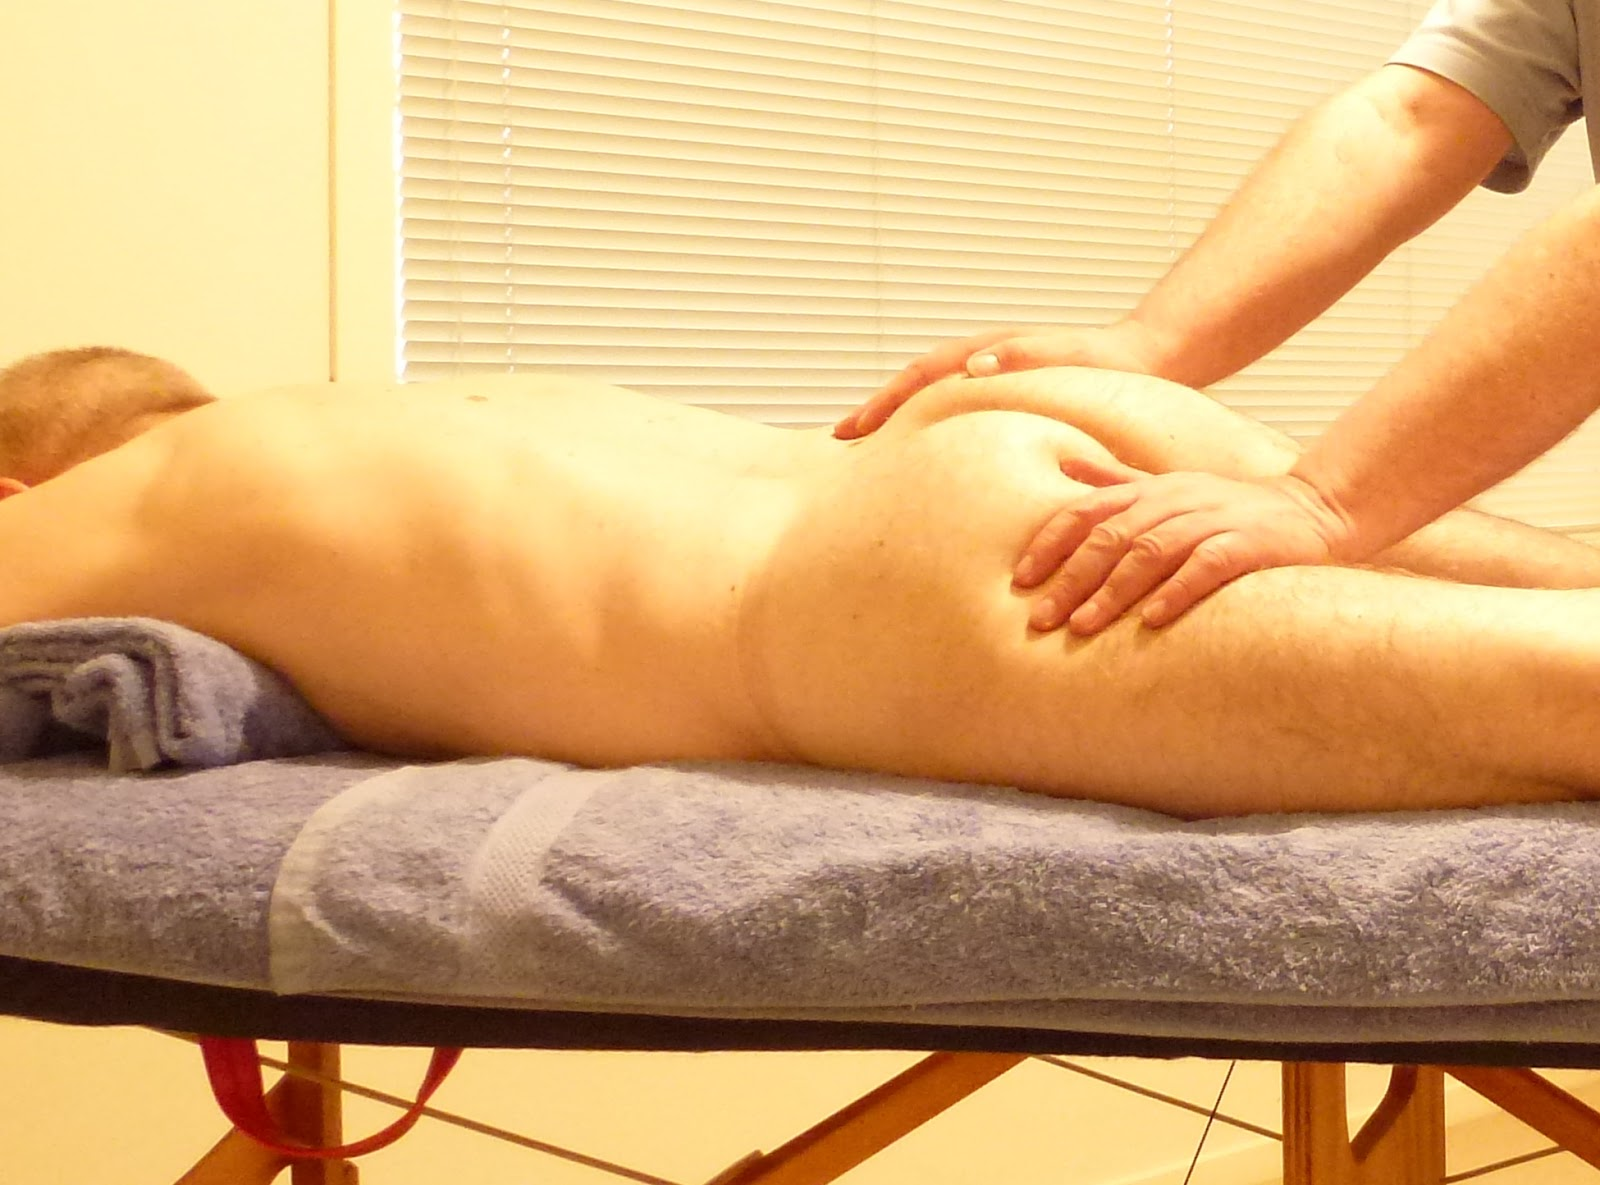 oily sexual massage gay brothel melbourne